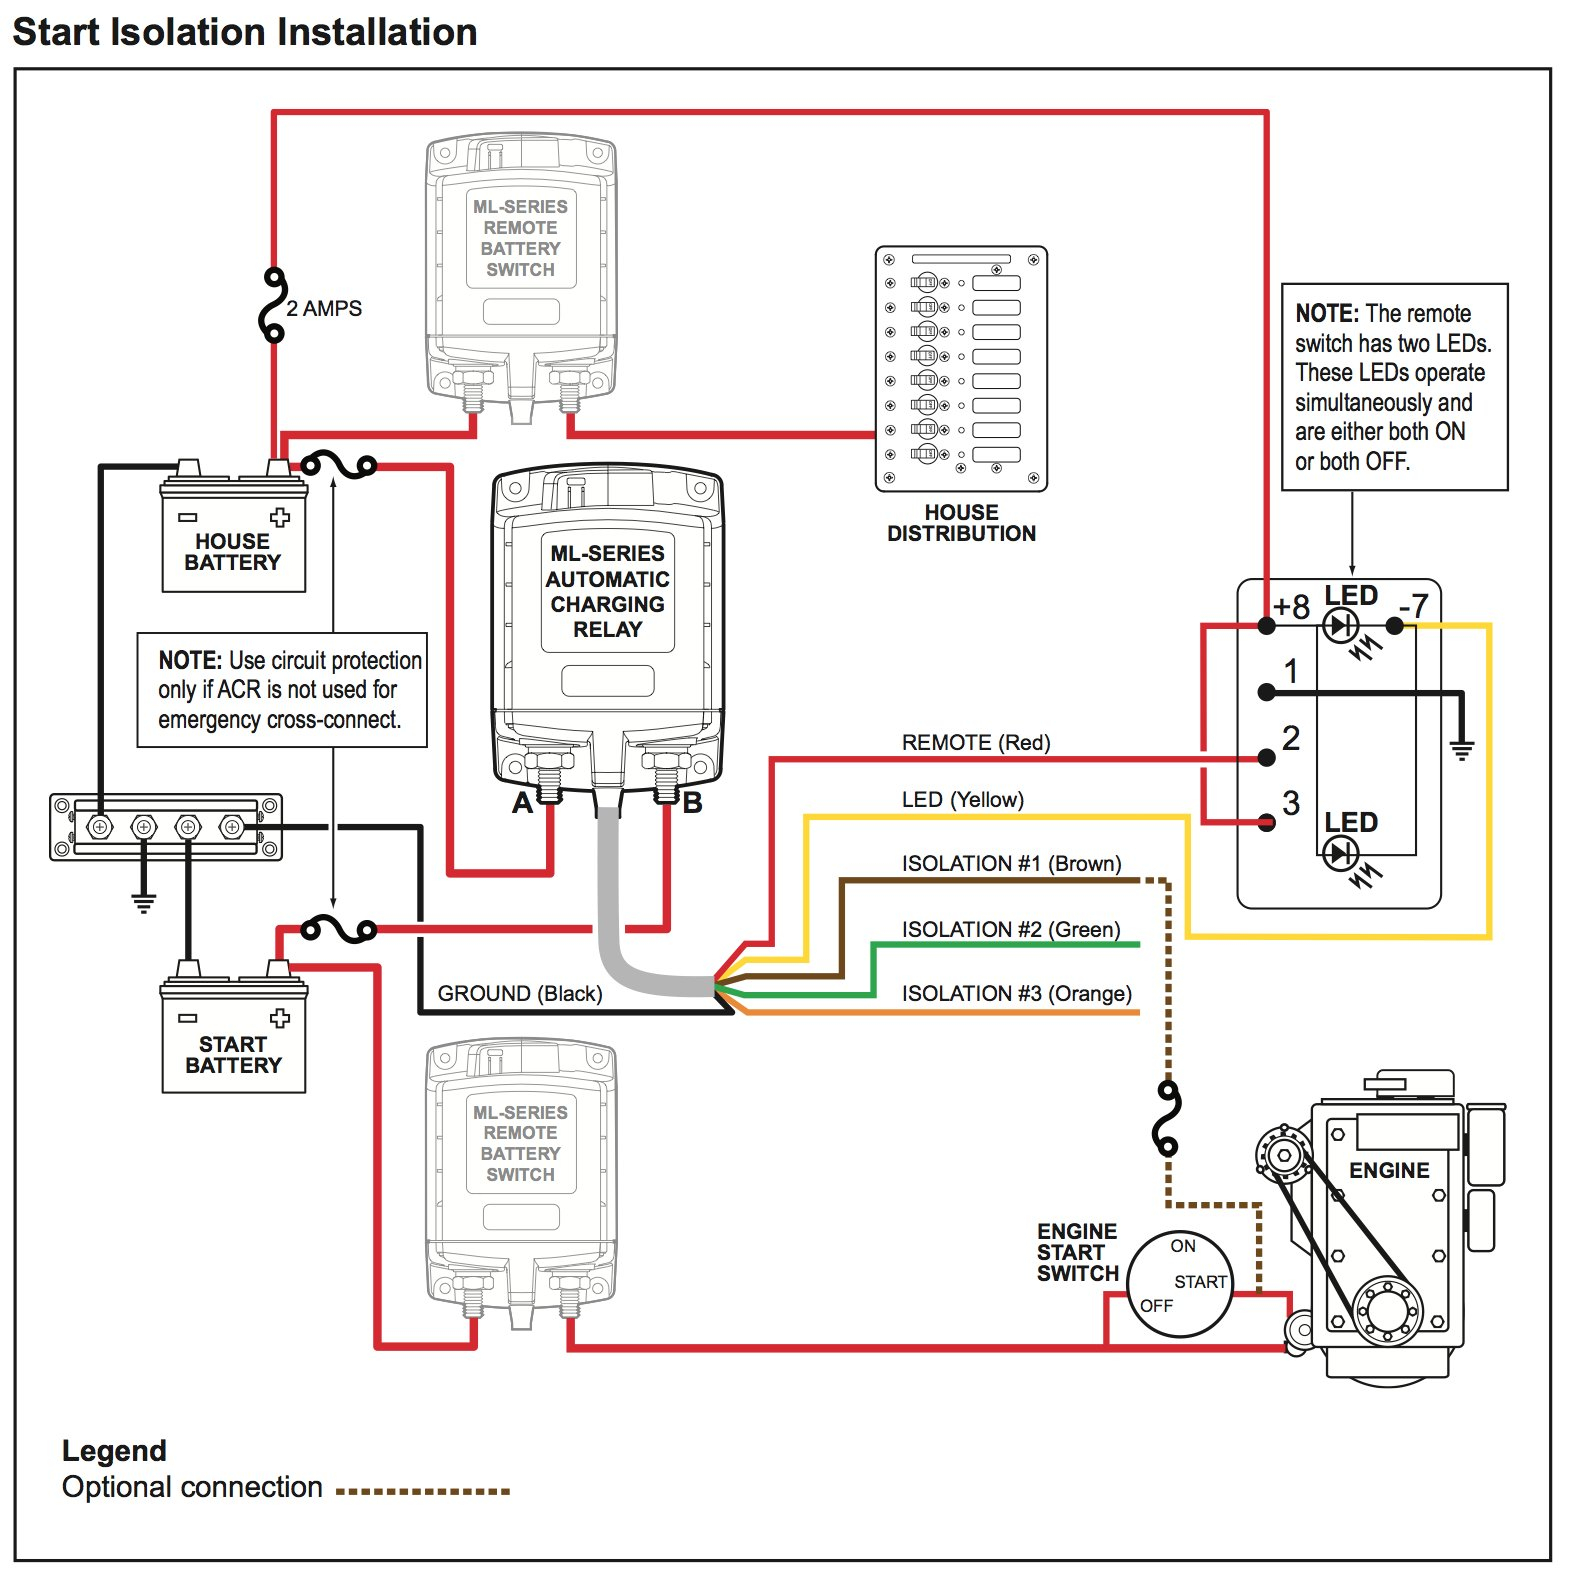 blue sea dual battery switch wiring diagram Collection-Sure Power Battery isolator Wiring Diagram Best Blue Sea Ml Acr 500 Amp Dual Battery 15-i